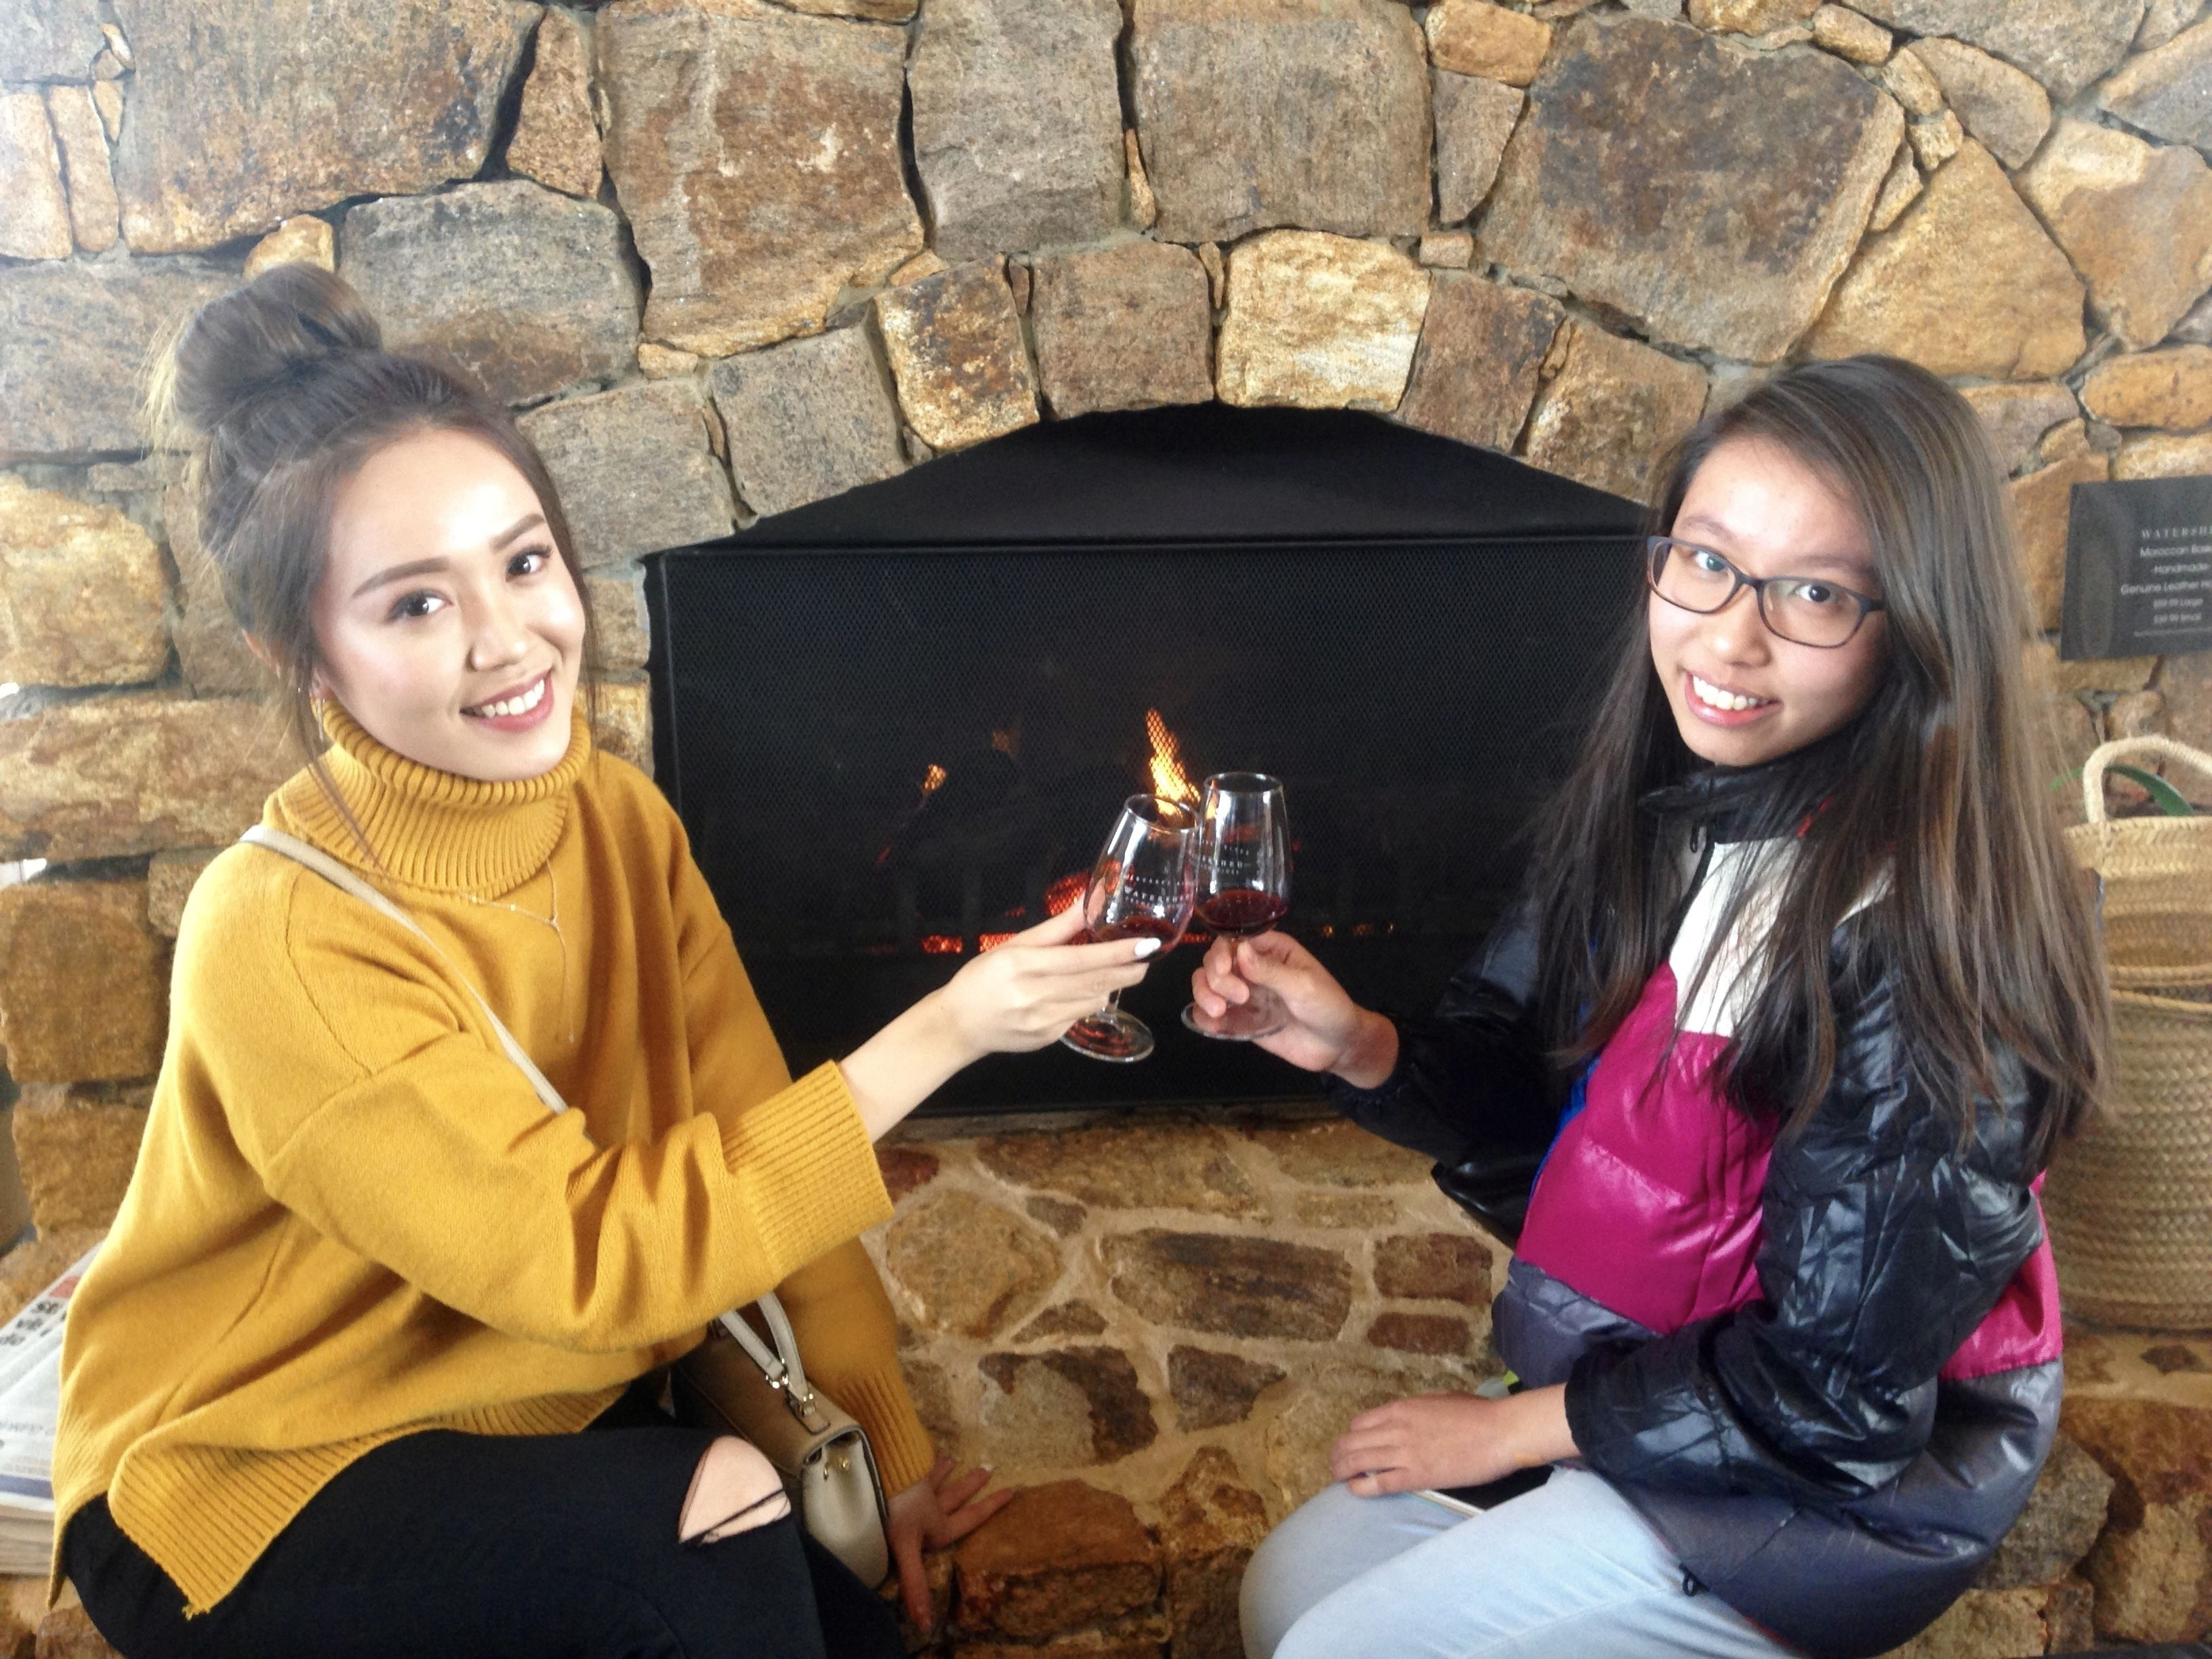 Two women toast with wine glasses next to a fire place